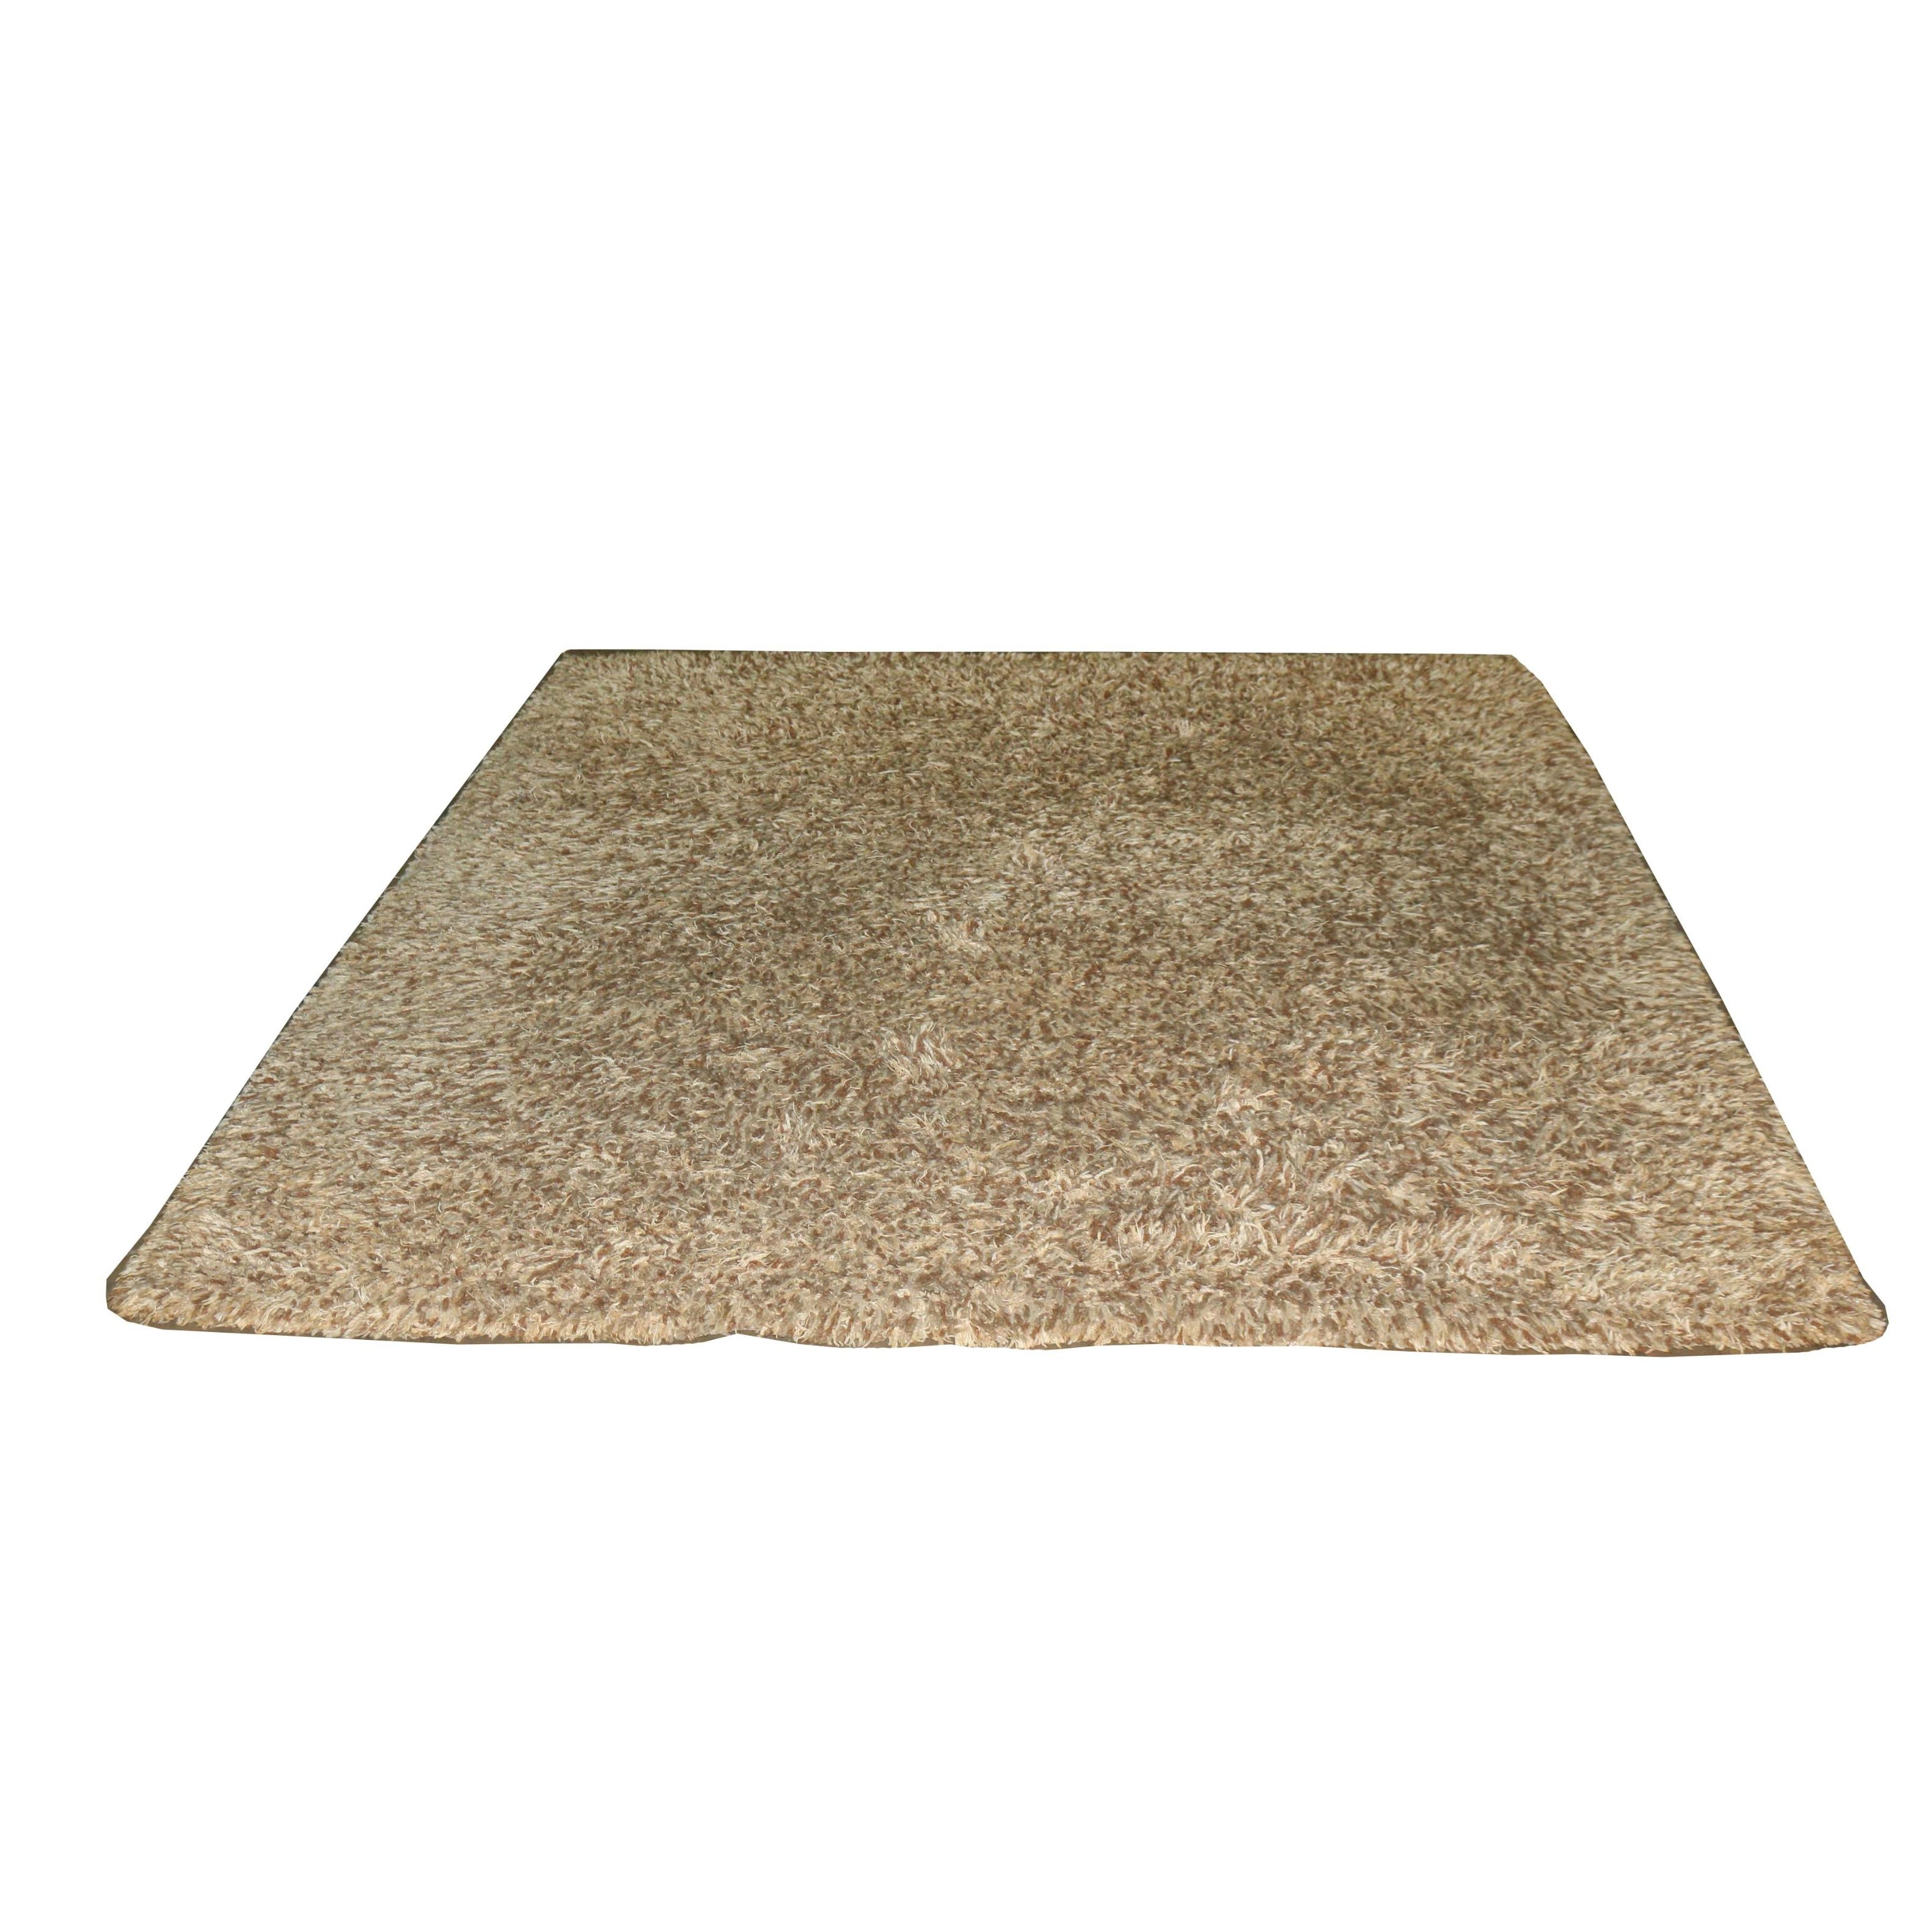 Hand Knotted Wool Shag Rug